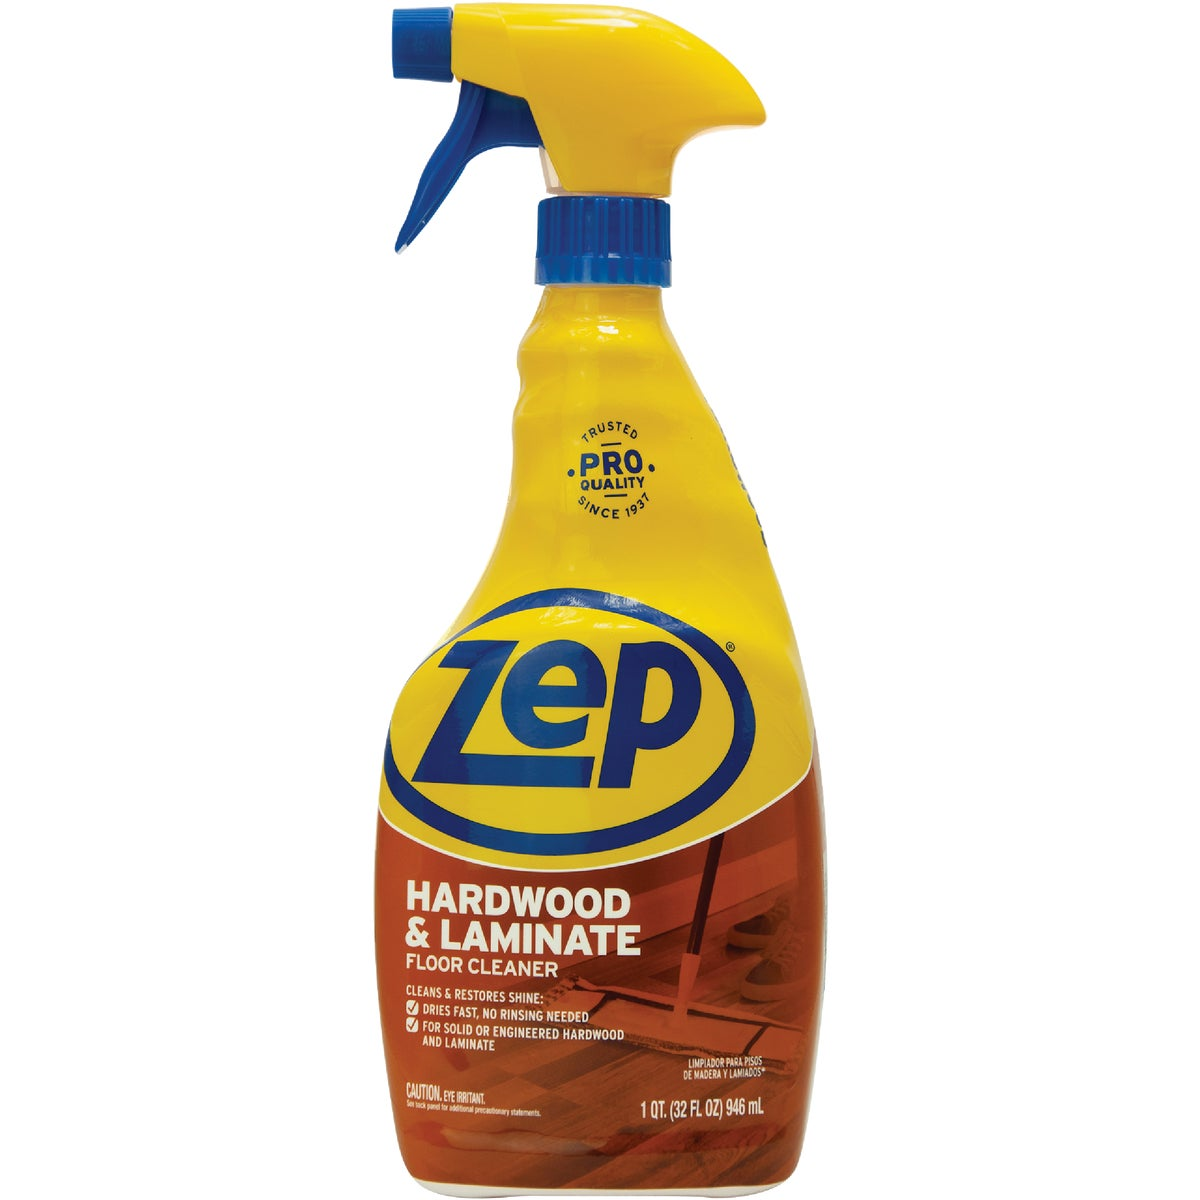 32OZ HRDWD FLOOR CLEANER